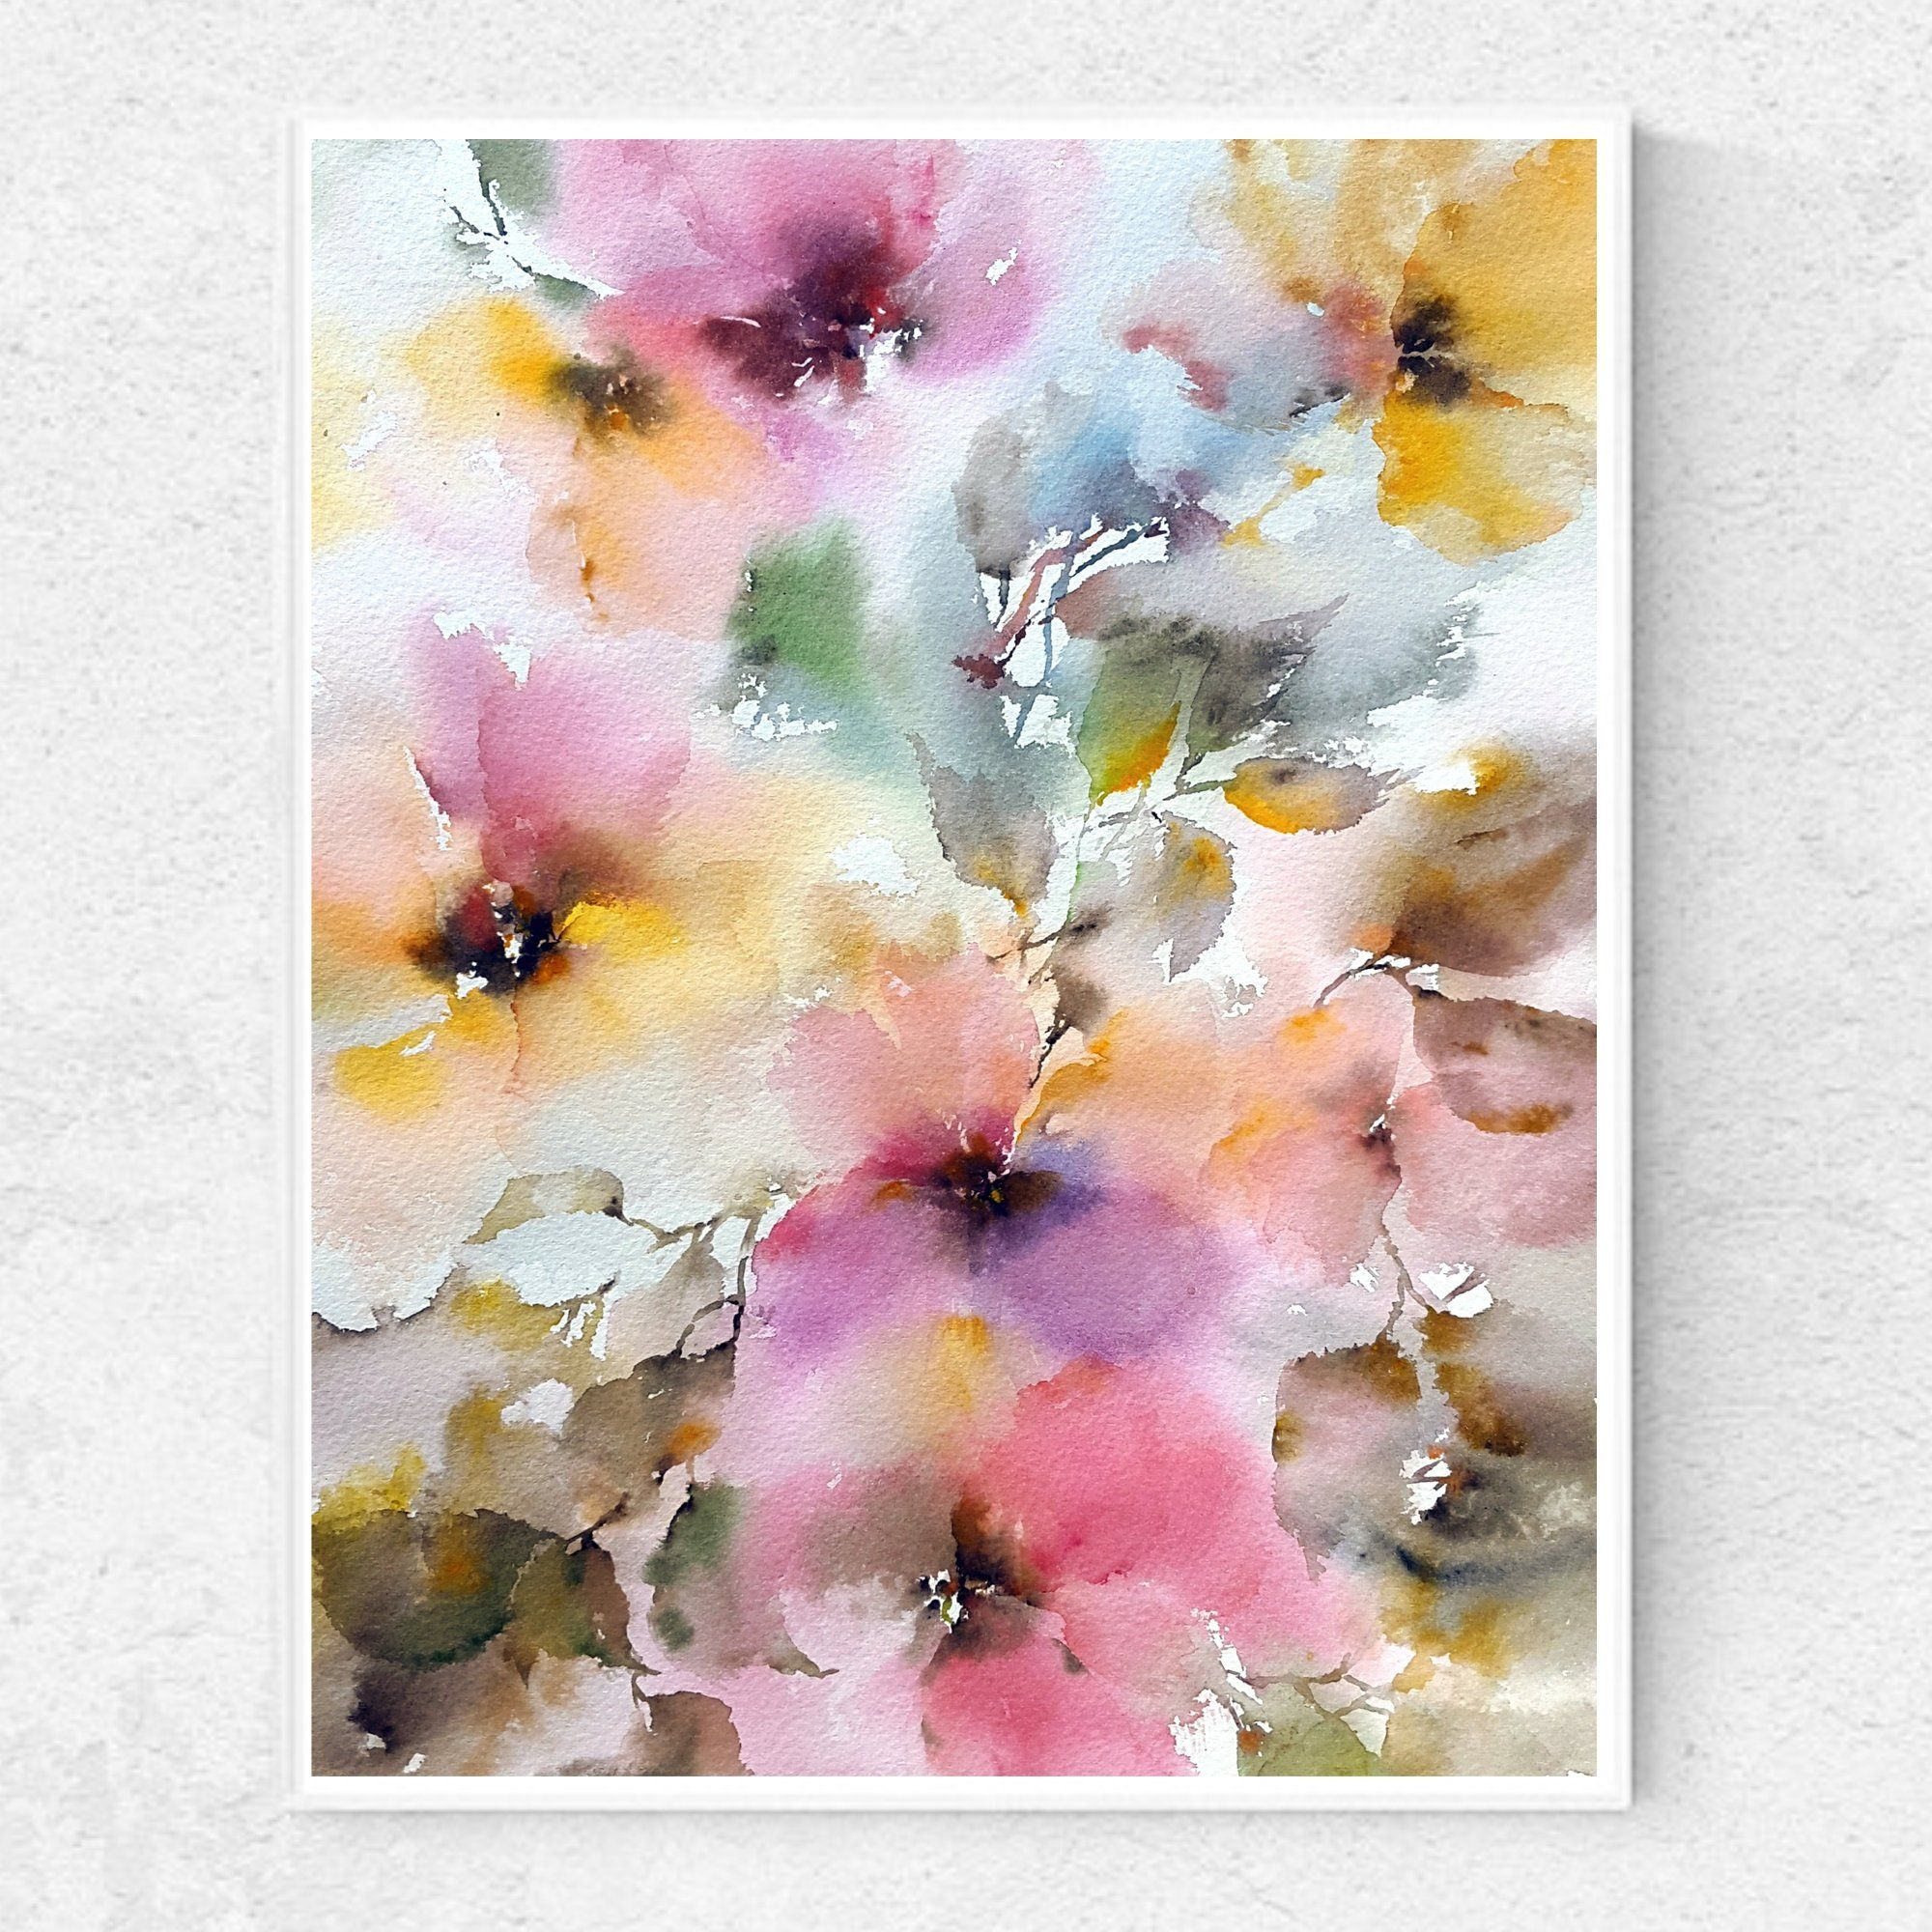 Watercolor Floral Painting With Flowers Abstract Flowers Etsy